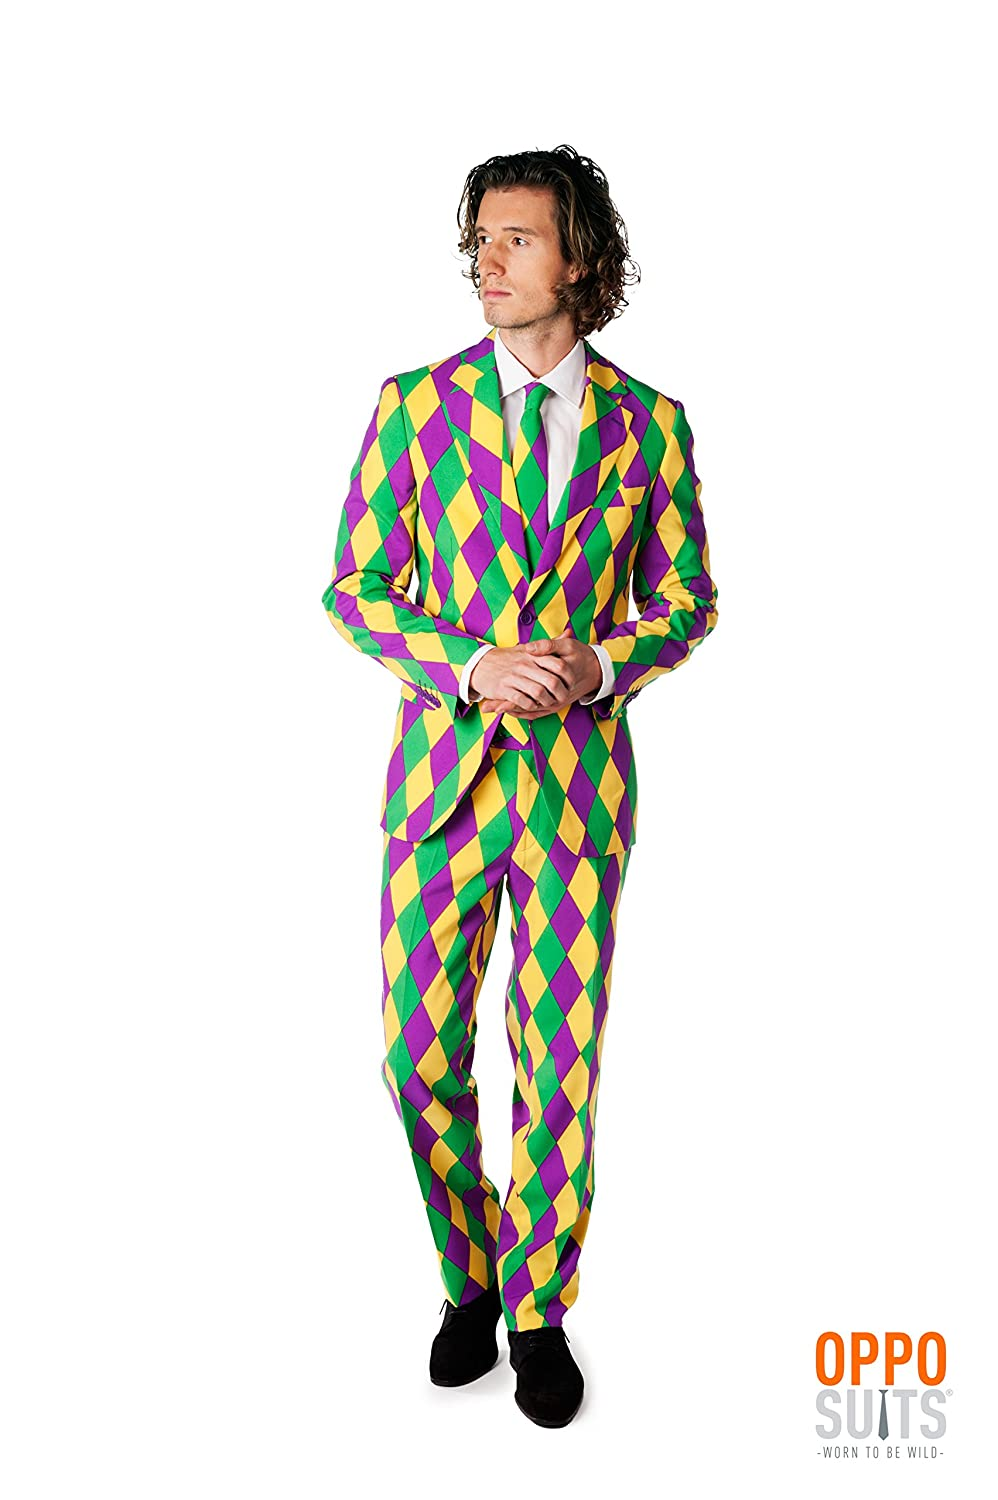 Mens Opposuits Mardis Gras Suit 42 OppoSuits USA Inc.